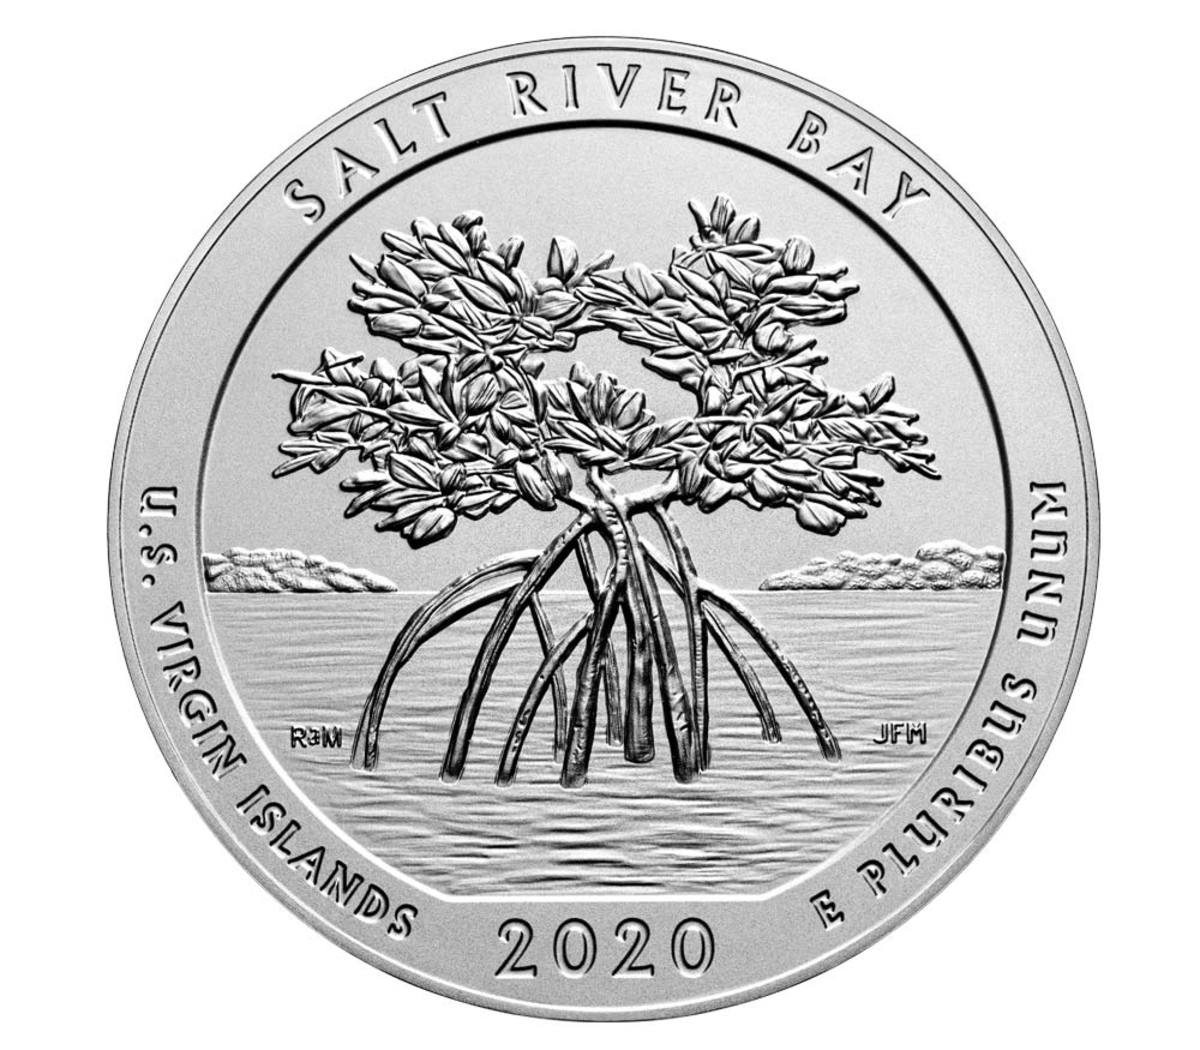 The Salt River Bay 2020 Uncirculated Five-ounce silver coin goes on sale Sept. 18 at noon EST. (Image courtesy U.S. Mint)